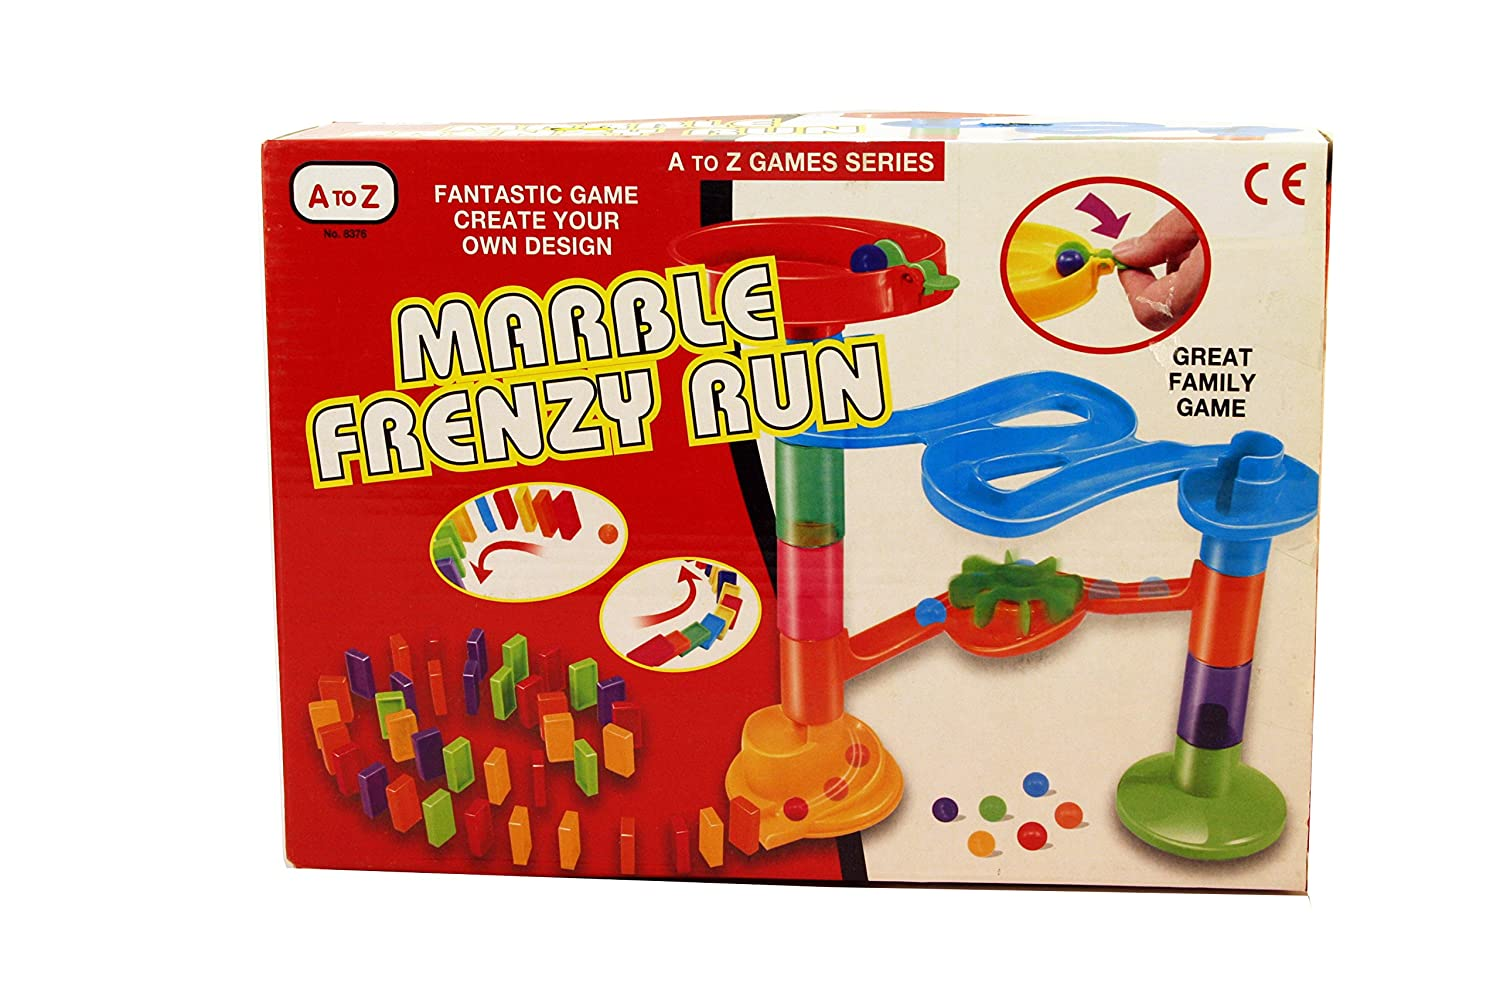 Fantastic games and toys interesting. Tell